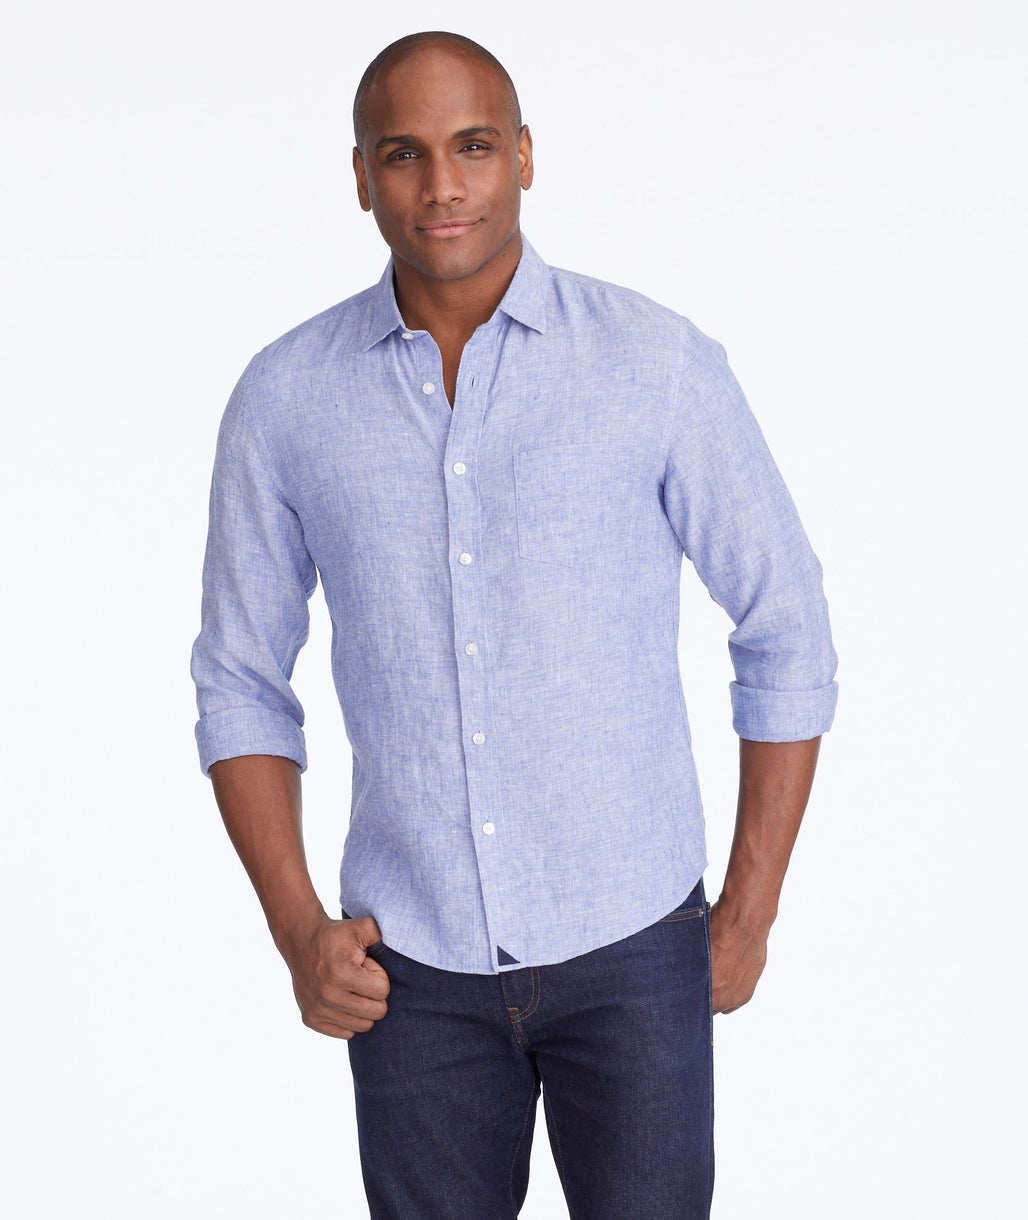 Model wearing a Blue Wrinkle-Resistant Linen Shirt